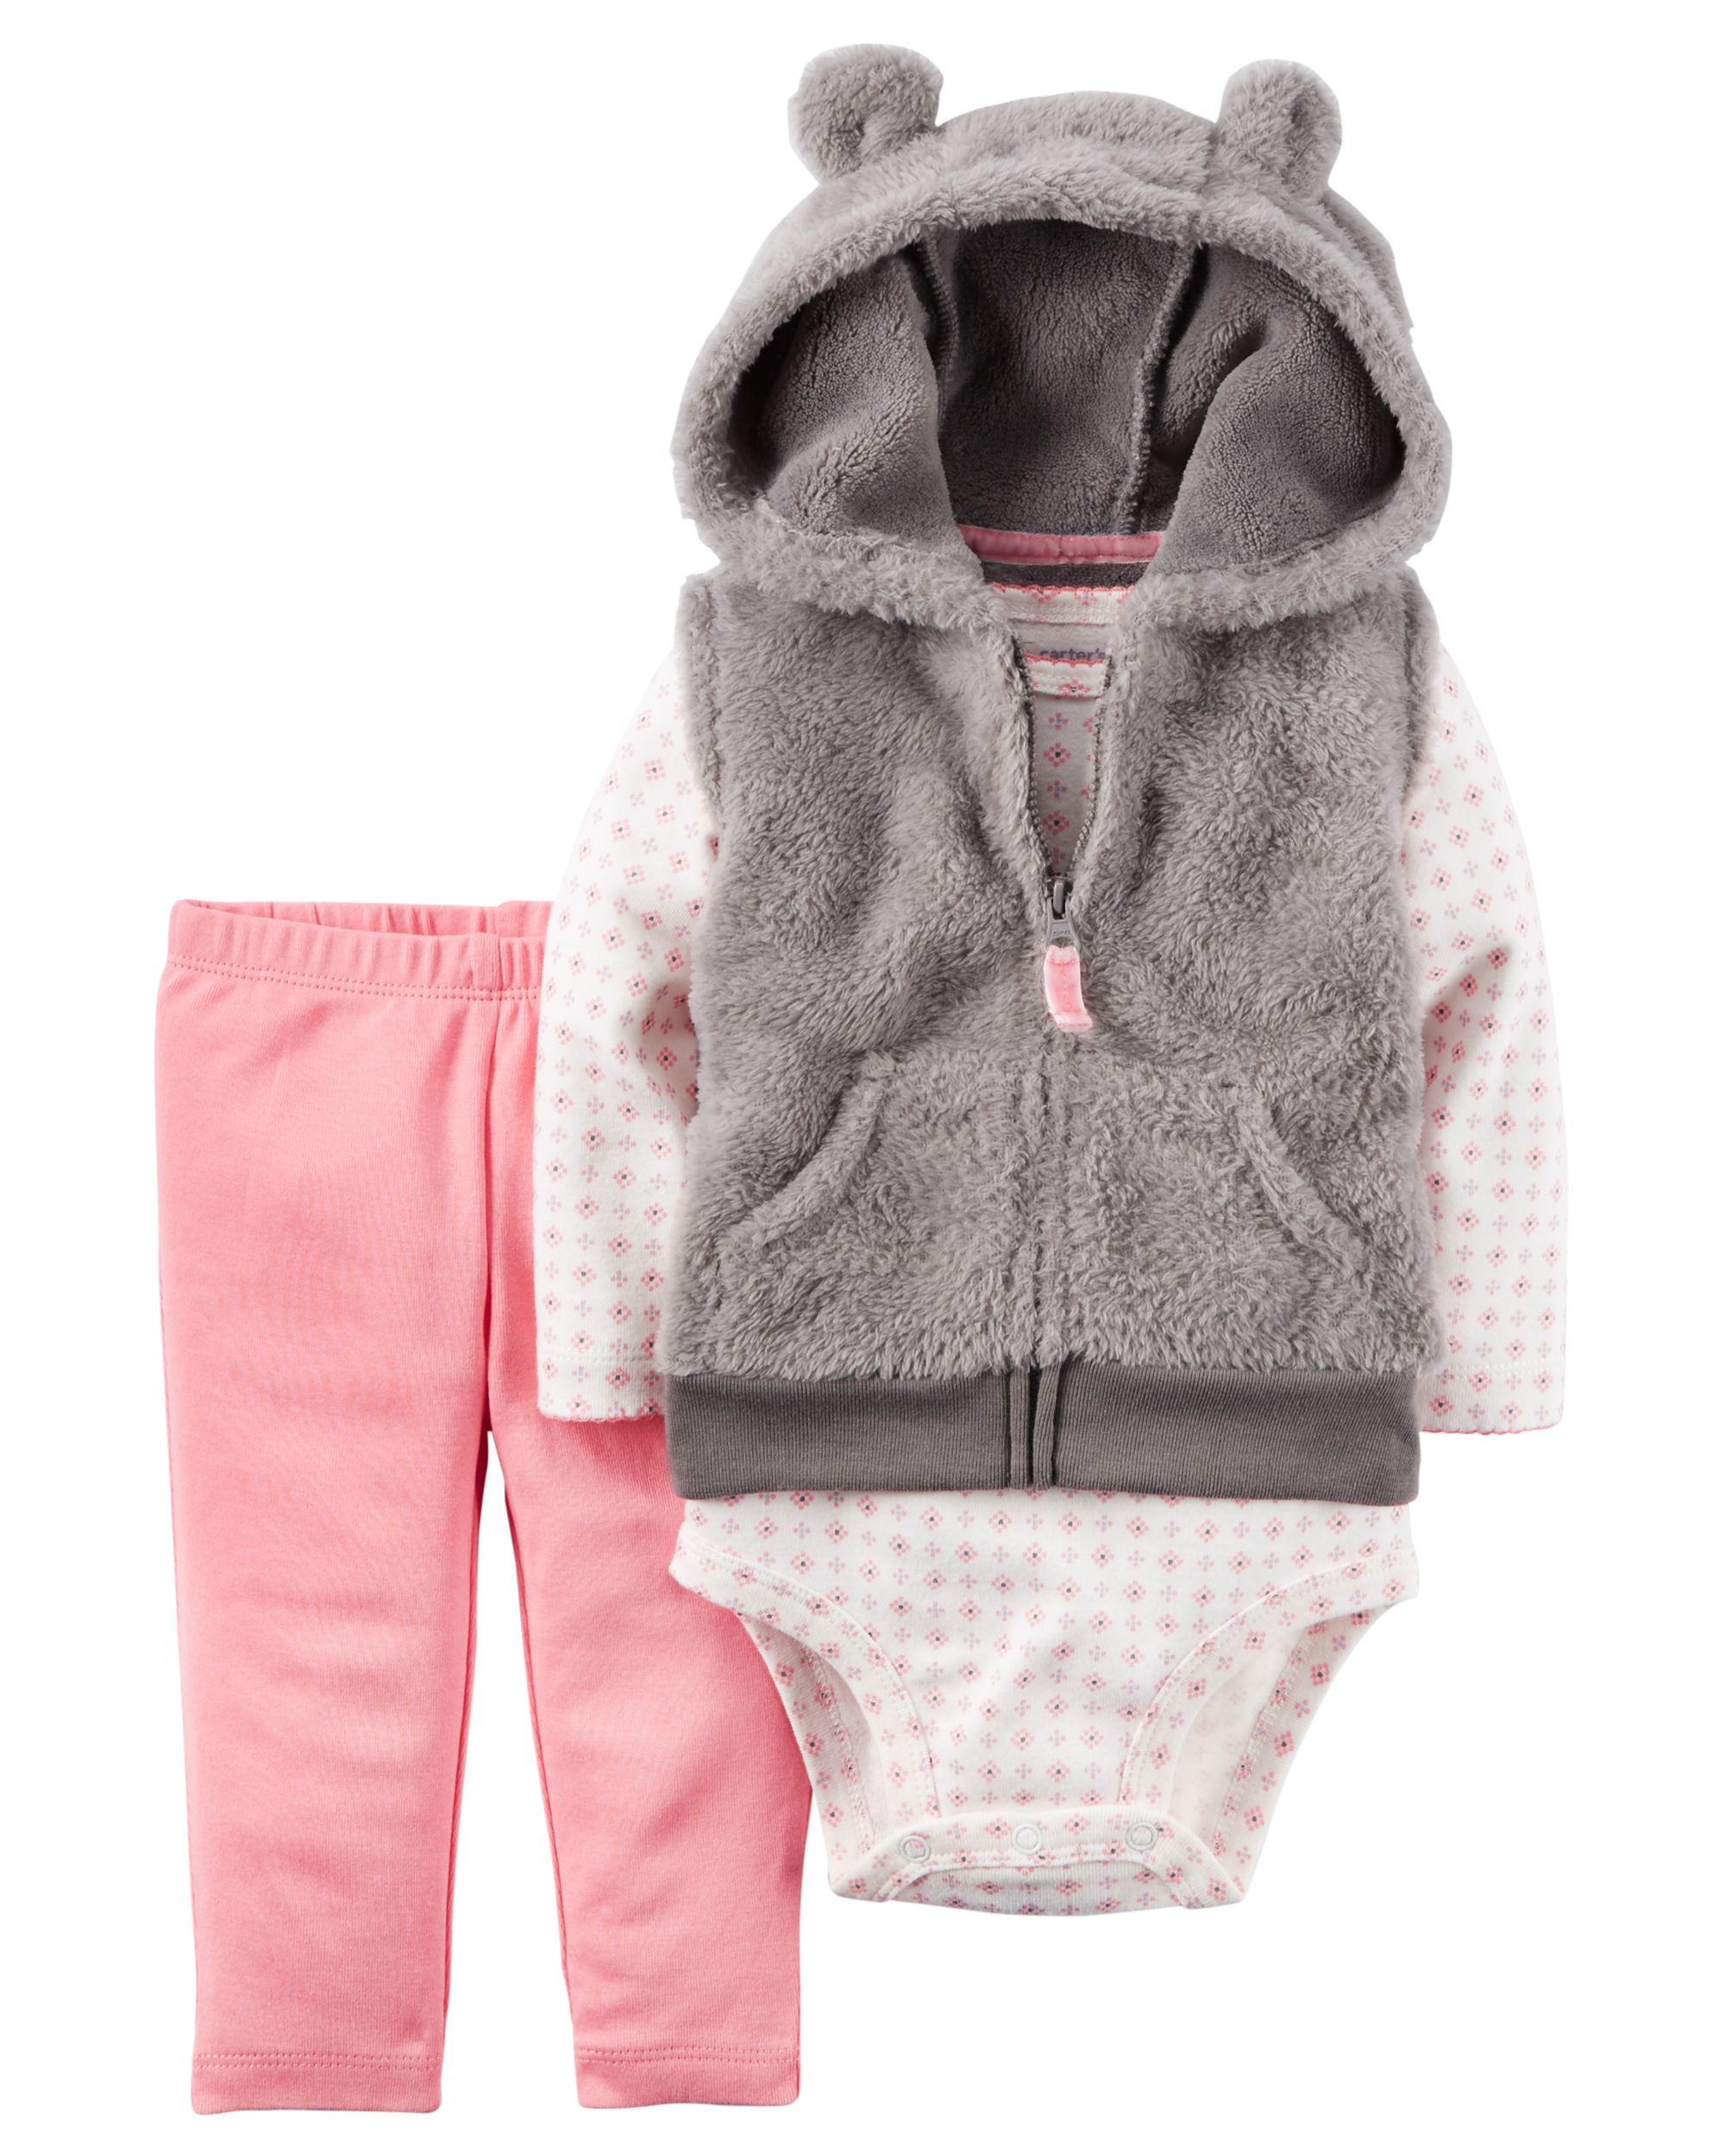 624c42d41 Baby Girl 3-Piece Little Vest Set